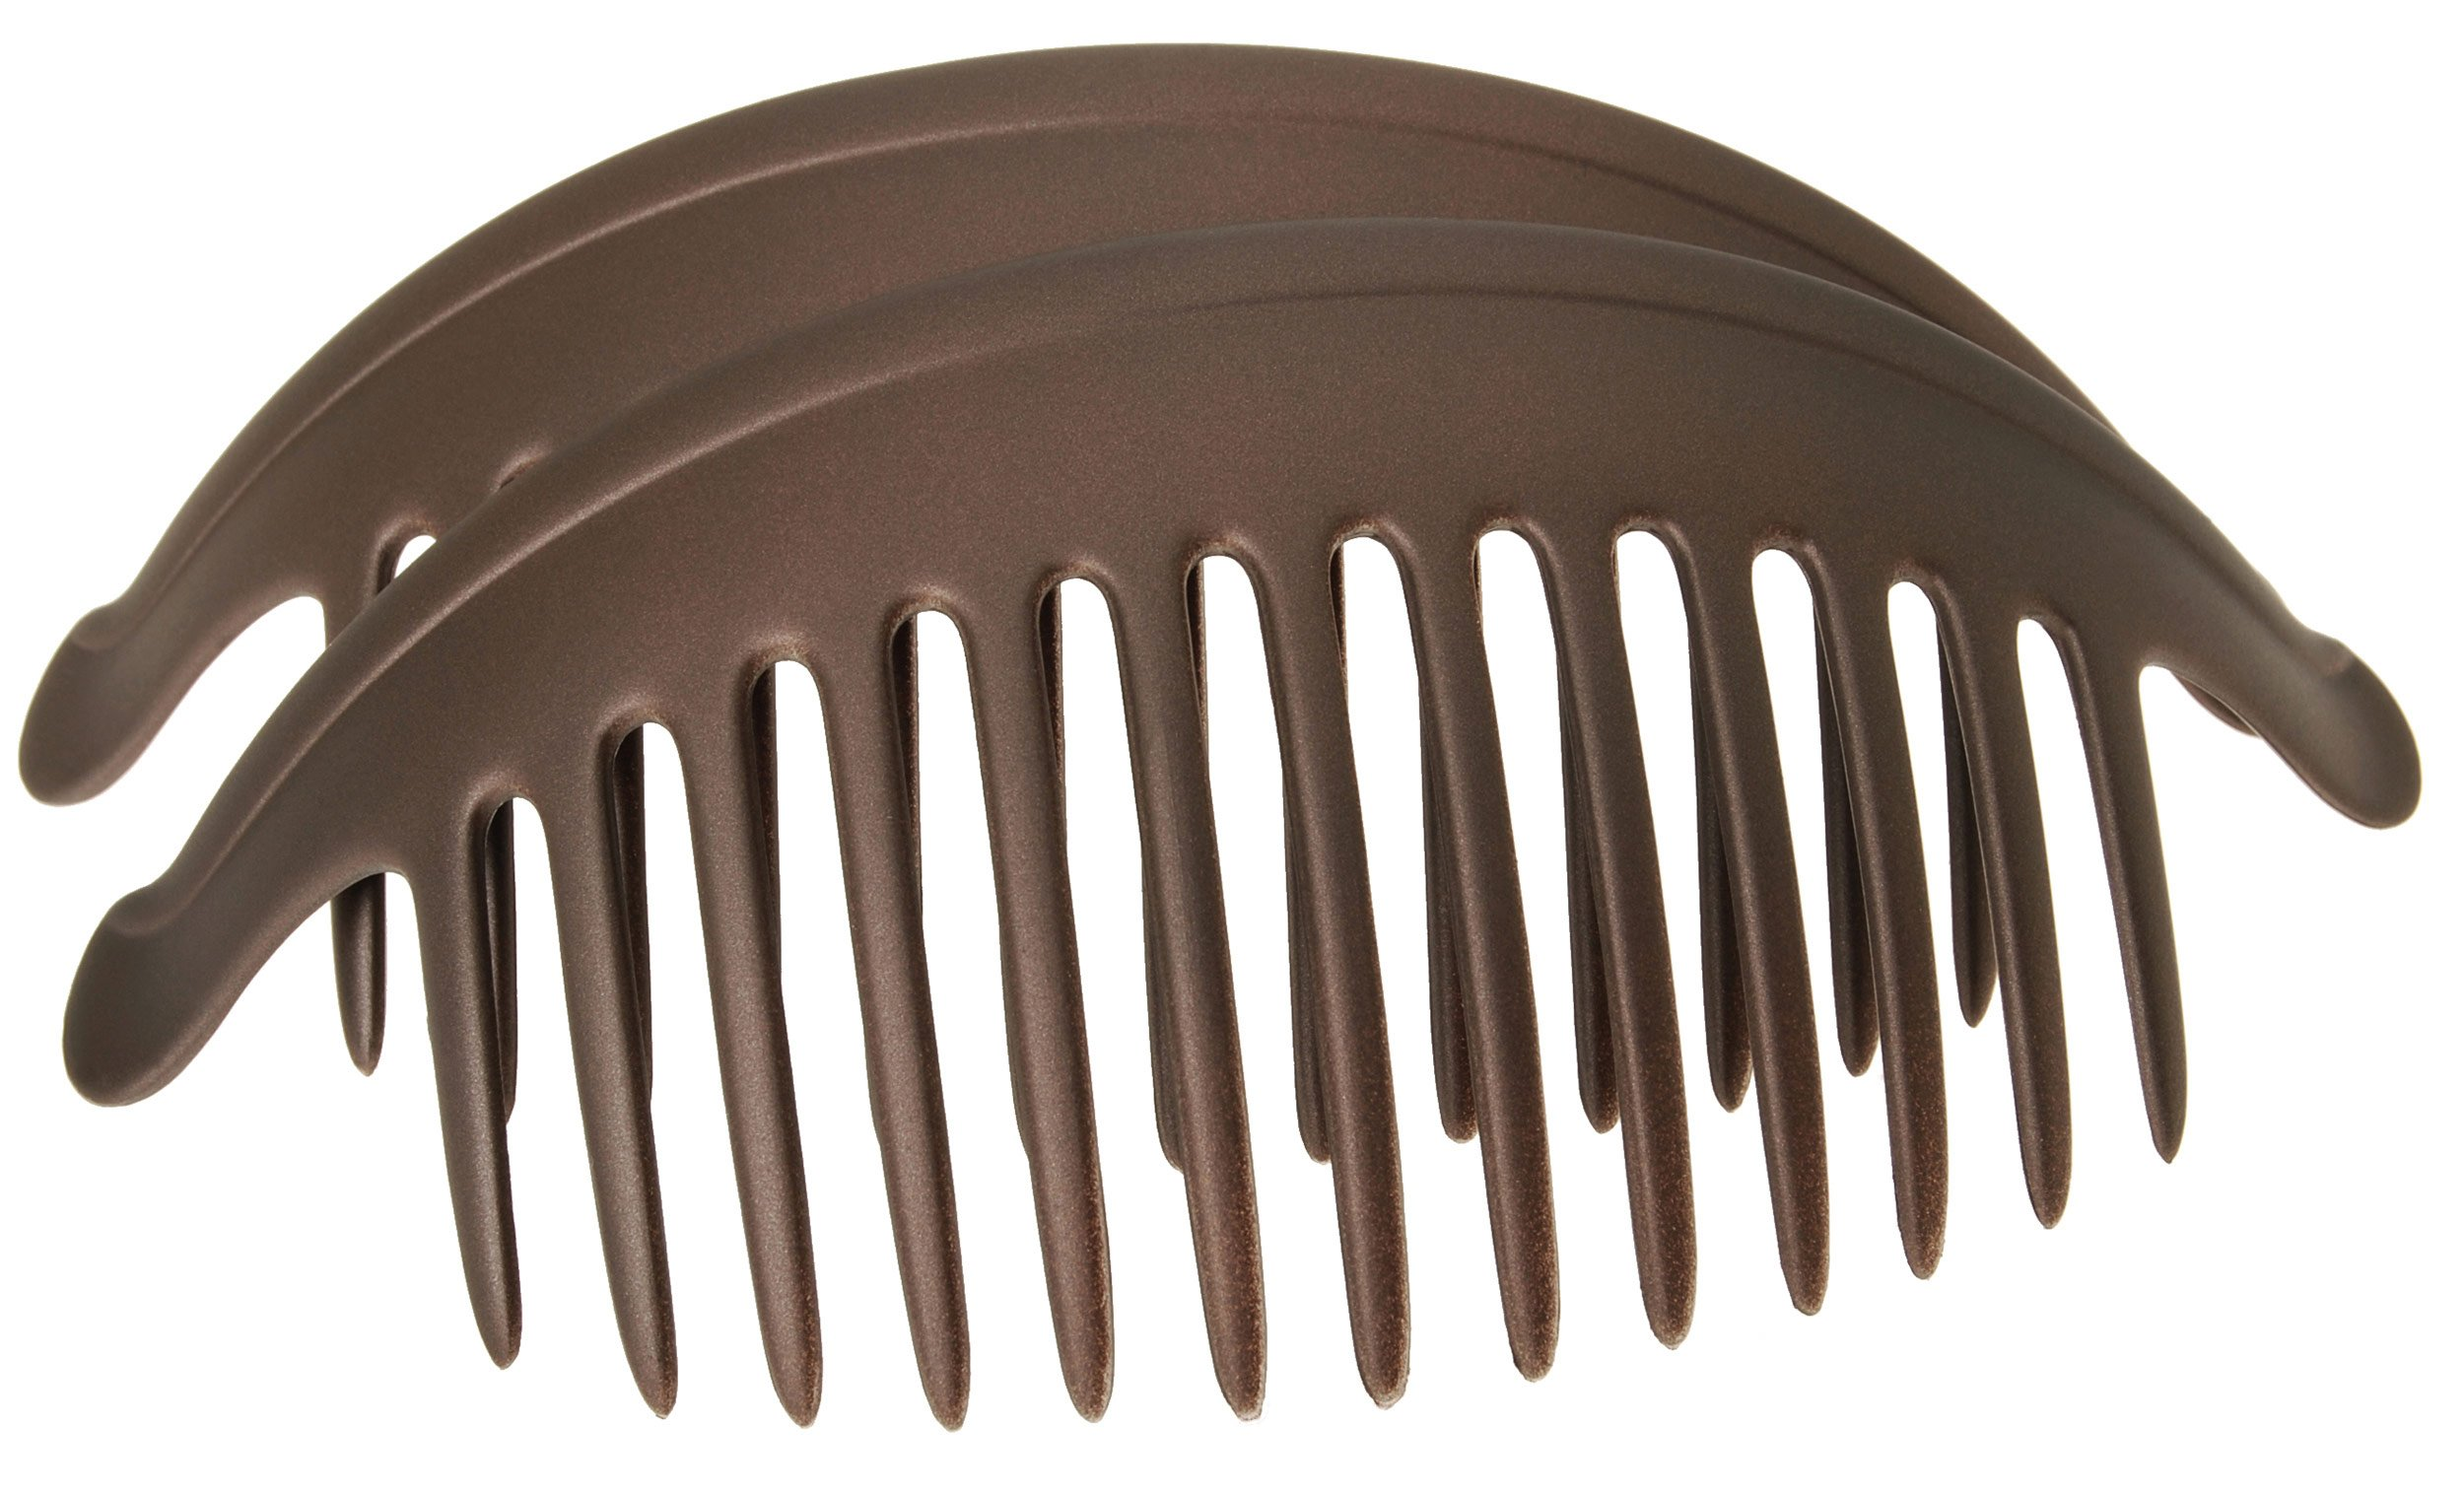 France Luxe Belle Larger Interlocking Comb, Matte Chocolate, Set of 2 - An Excellent Styling Solution For Long/Thick or Curly Hair by France Luxe